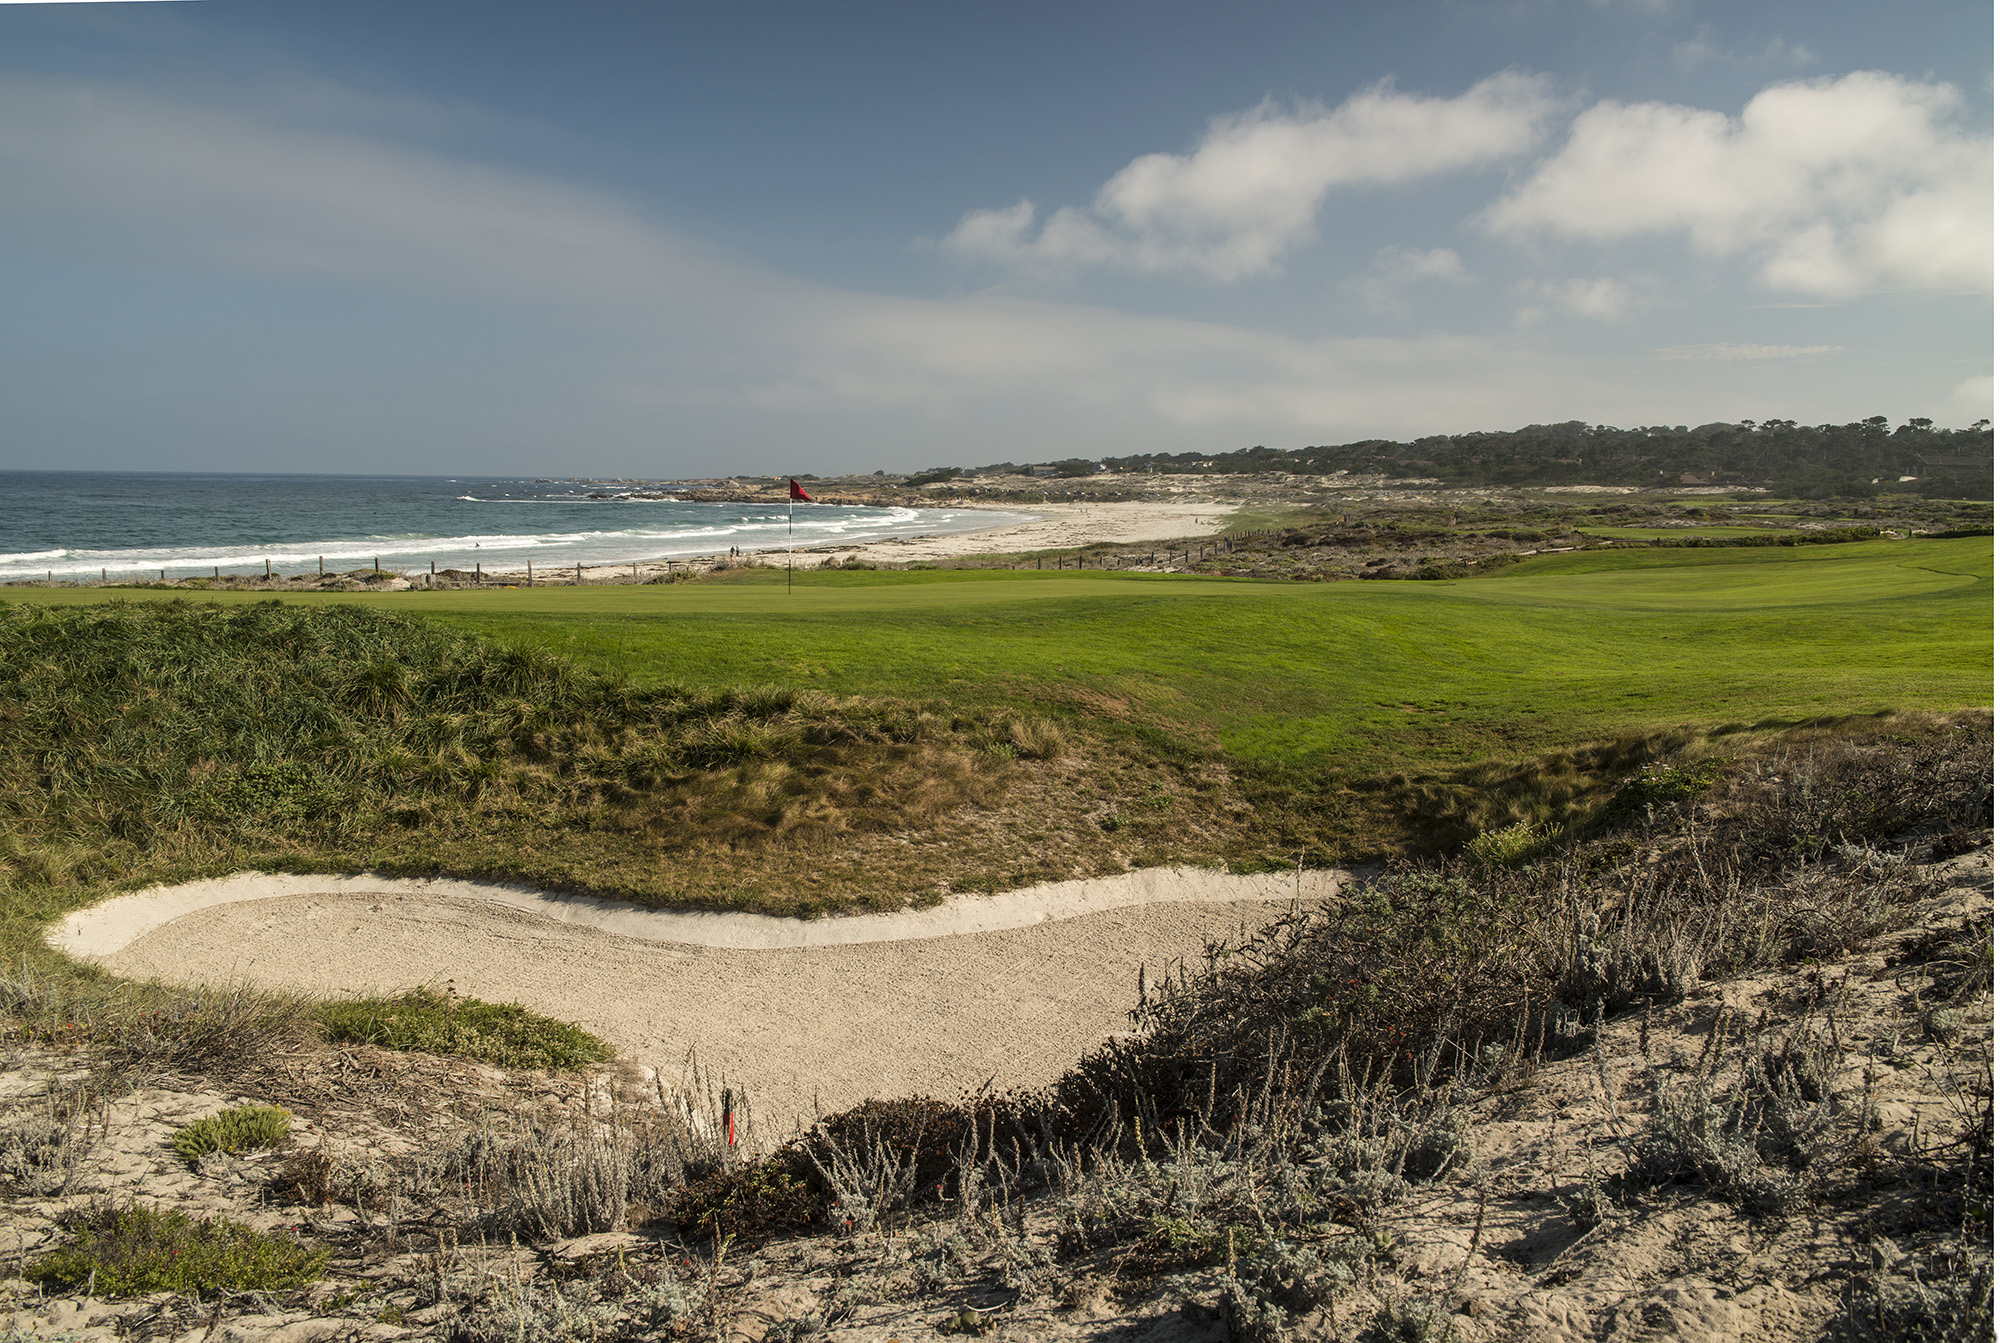 Looking toward the beach from beyond the 17th green at The Links at Spanish Bay